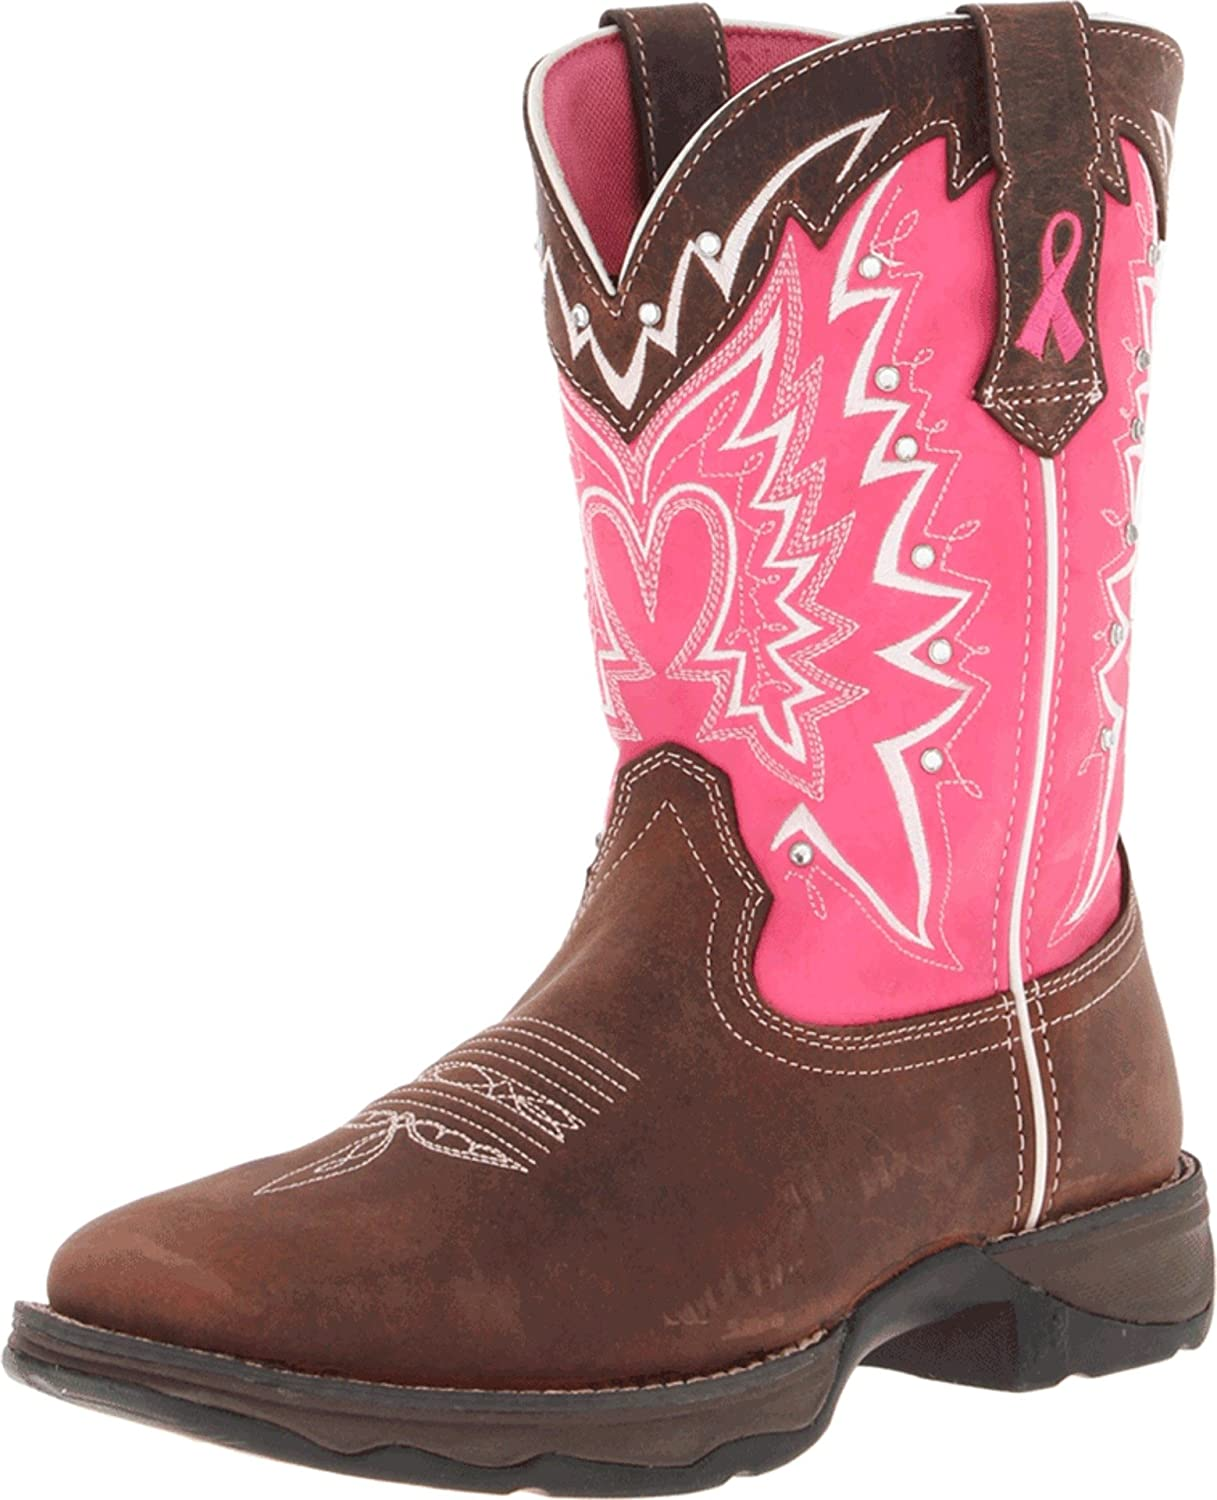 Durango Lady Rebel 10 Inch Pull-On RD3557 Western Boot B008JEI3C6 7 M US|Dark Brown/Pink